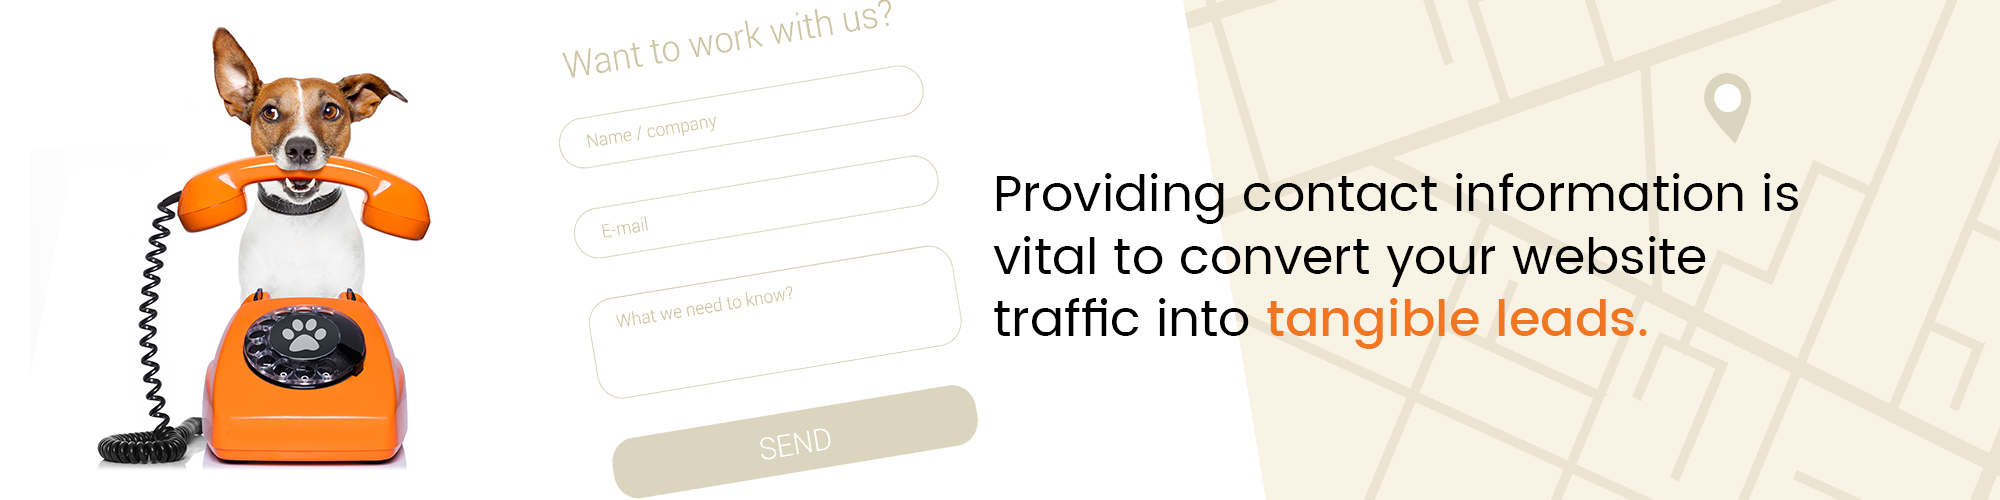 Providing contact information is vital to convert your website traffic into tangible leads.